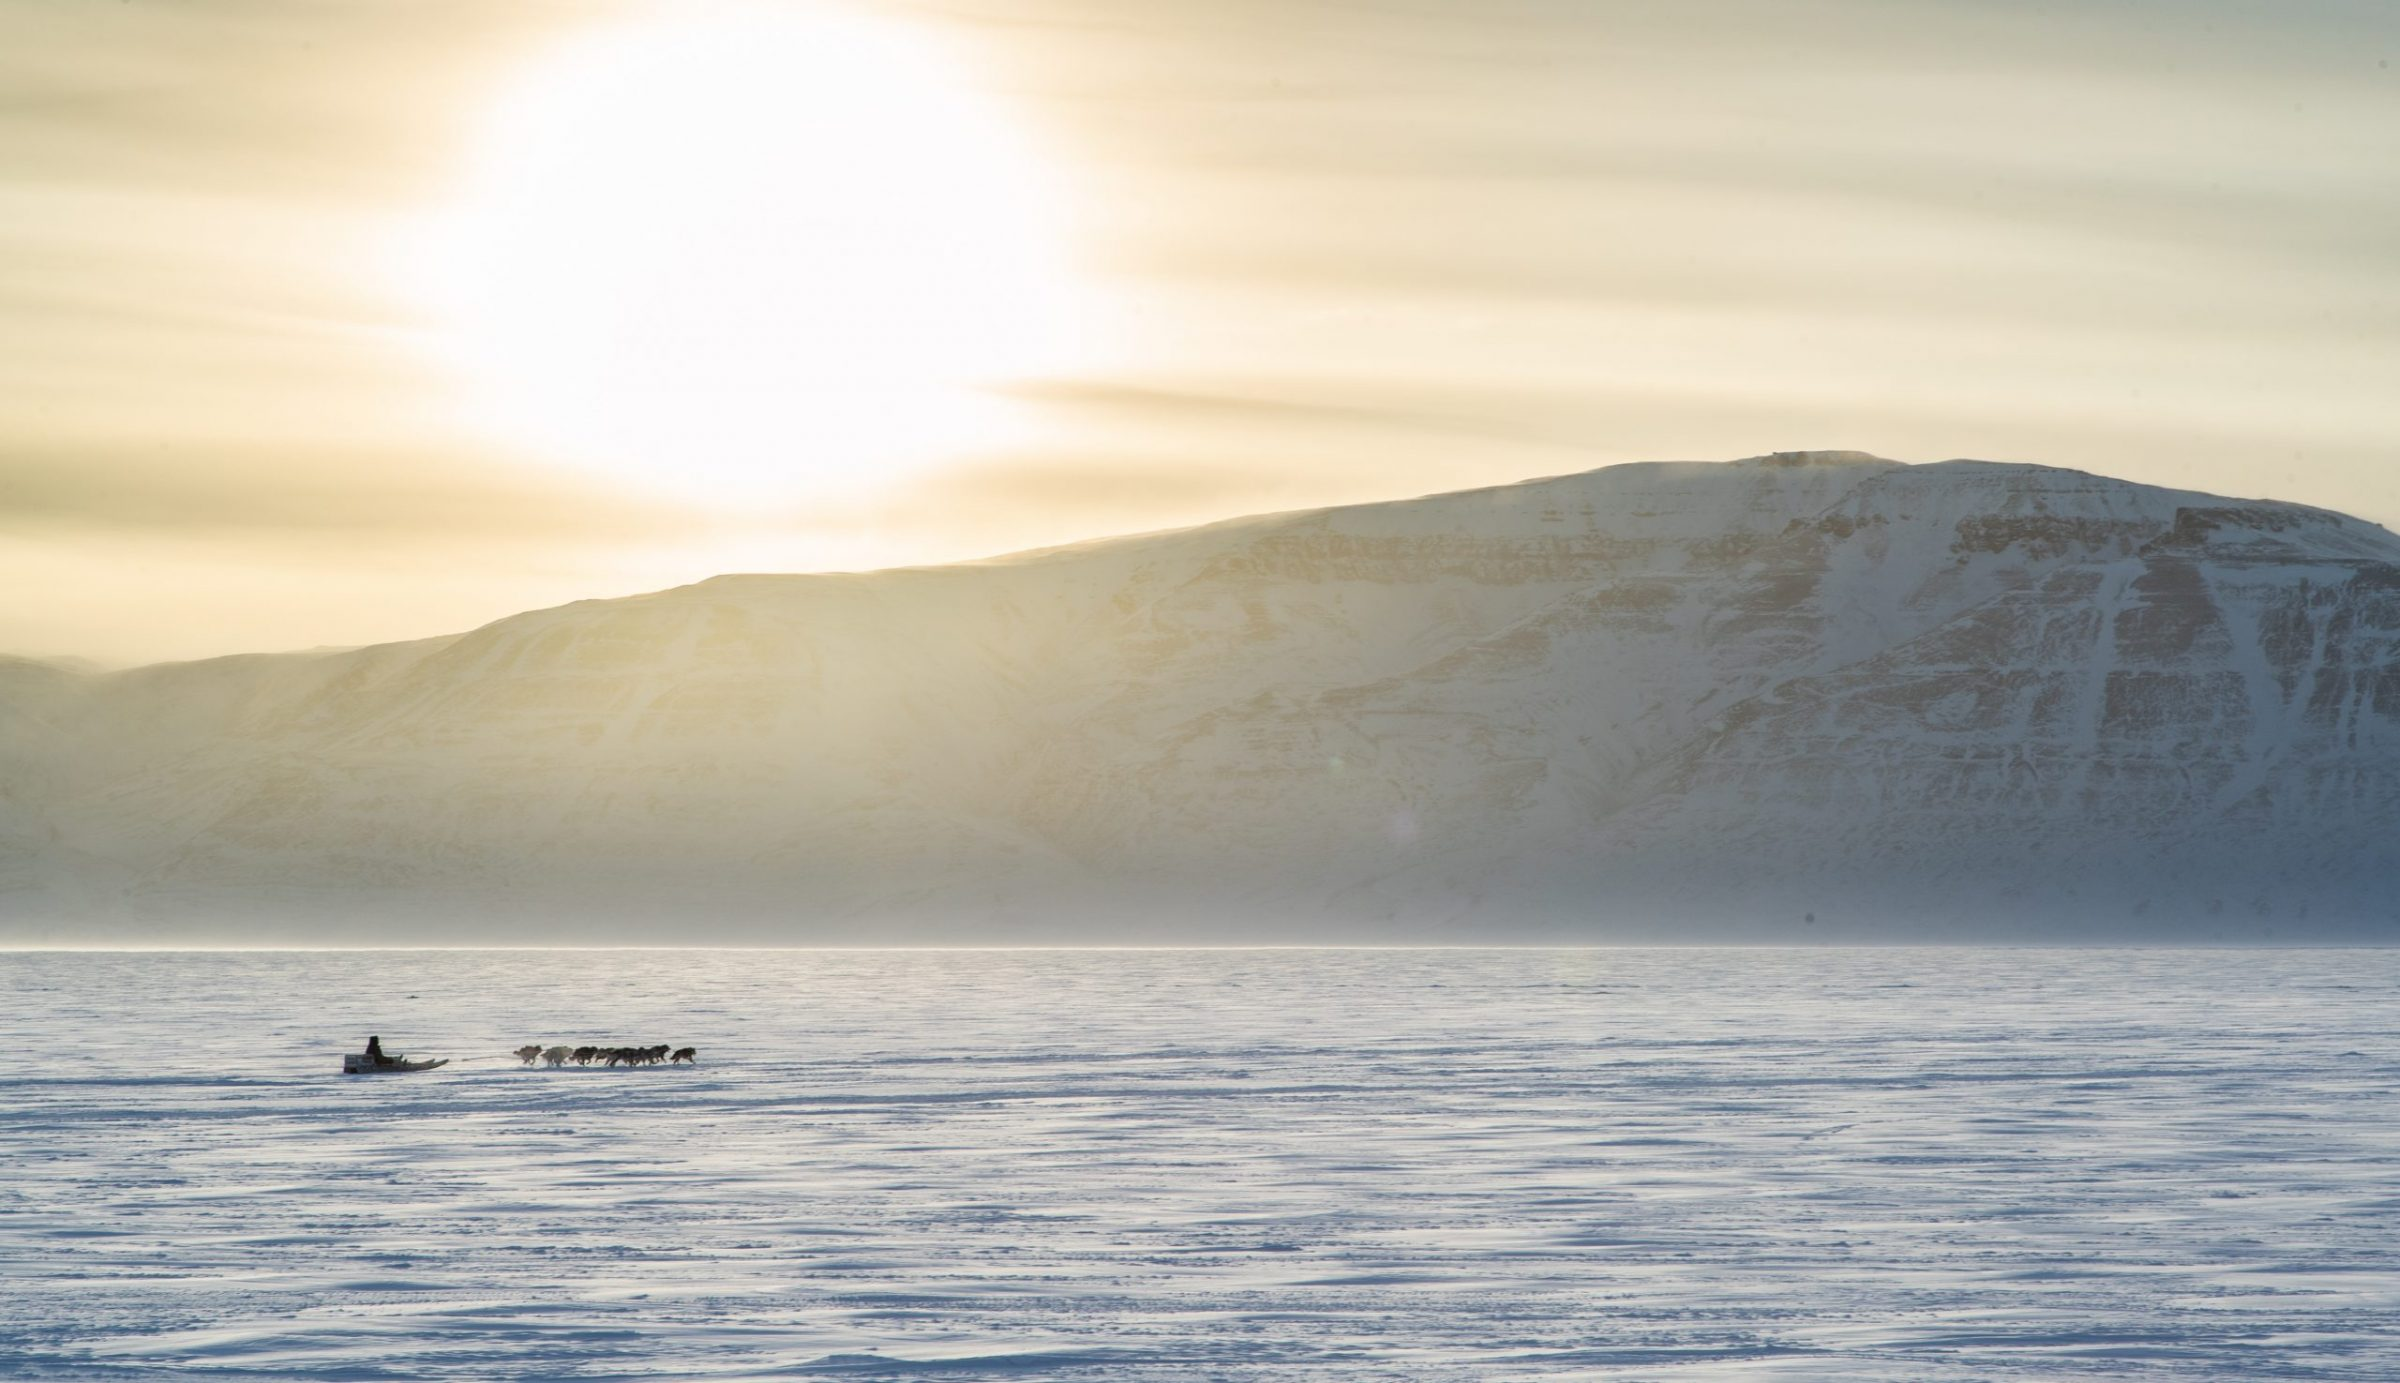 A dogsled team heads out onto Adams Sound near Arctic Bay on Feb. 20, as the sun peeks over the mountain known as Tununirusiq. (Photo by Clare Kines)